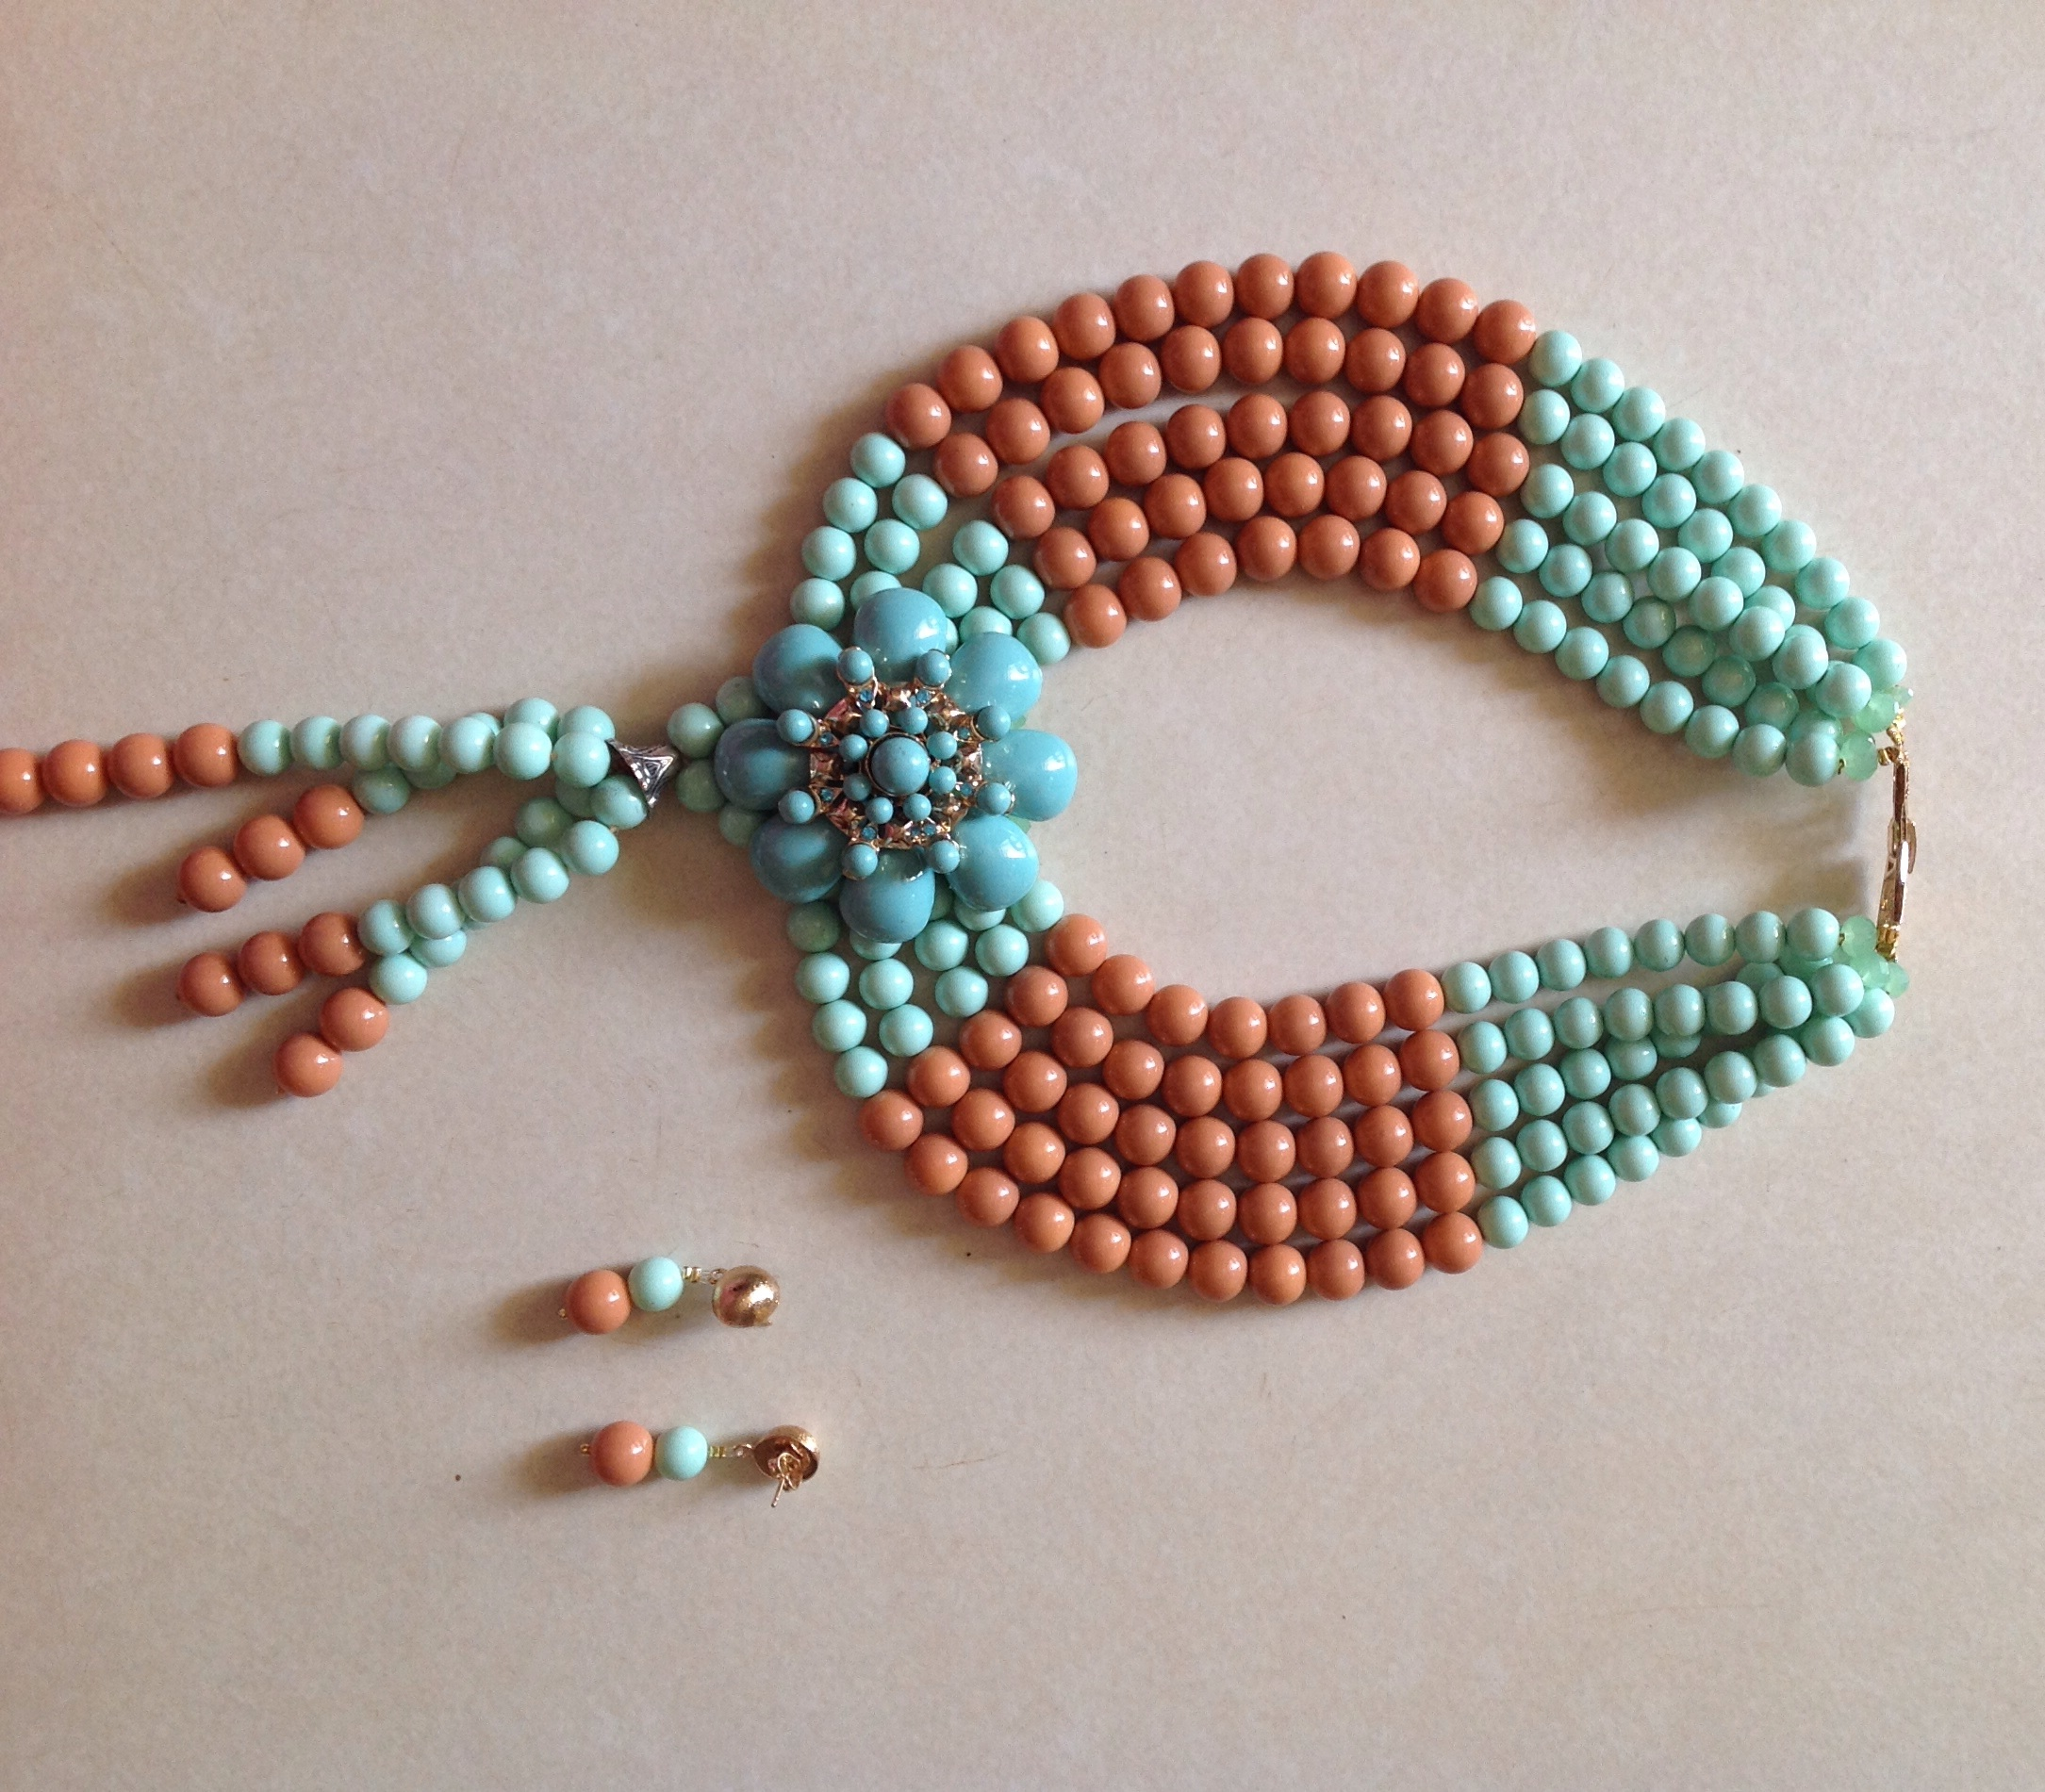 Unusual Style With Sand Beads Gallery - Jewelry Collection Ideas ...